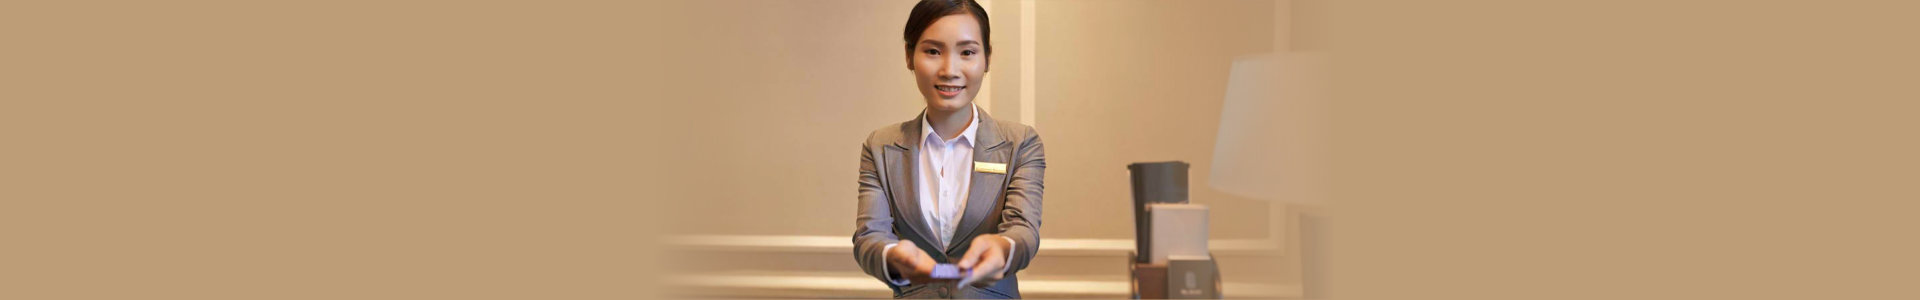 smiling receptionist giving electronic key to the guest